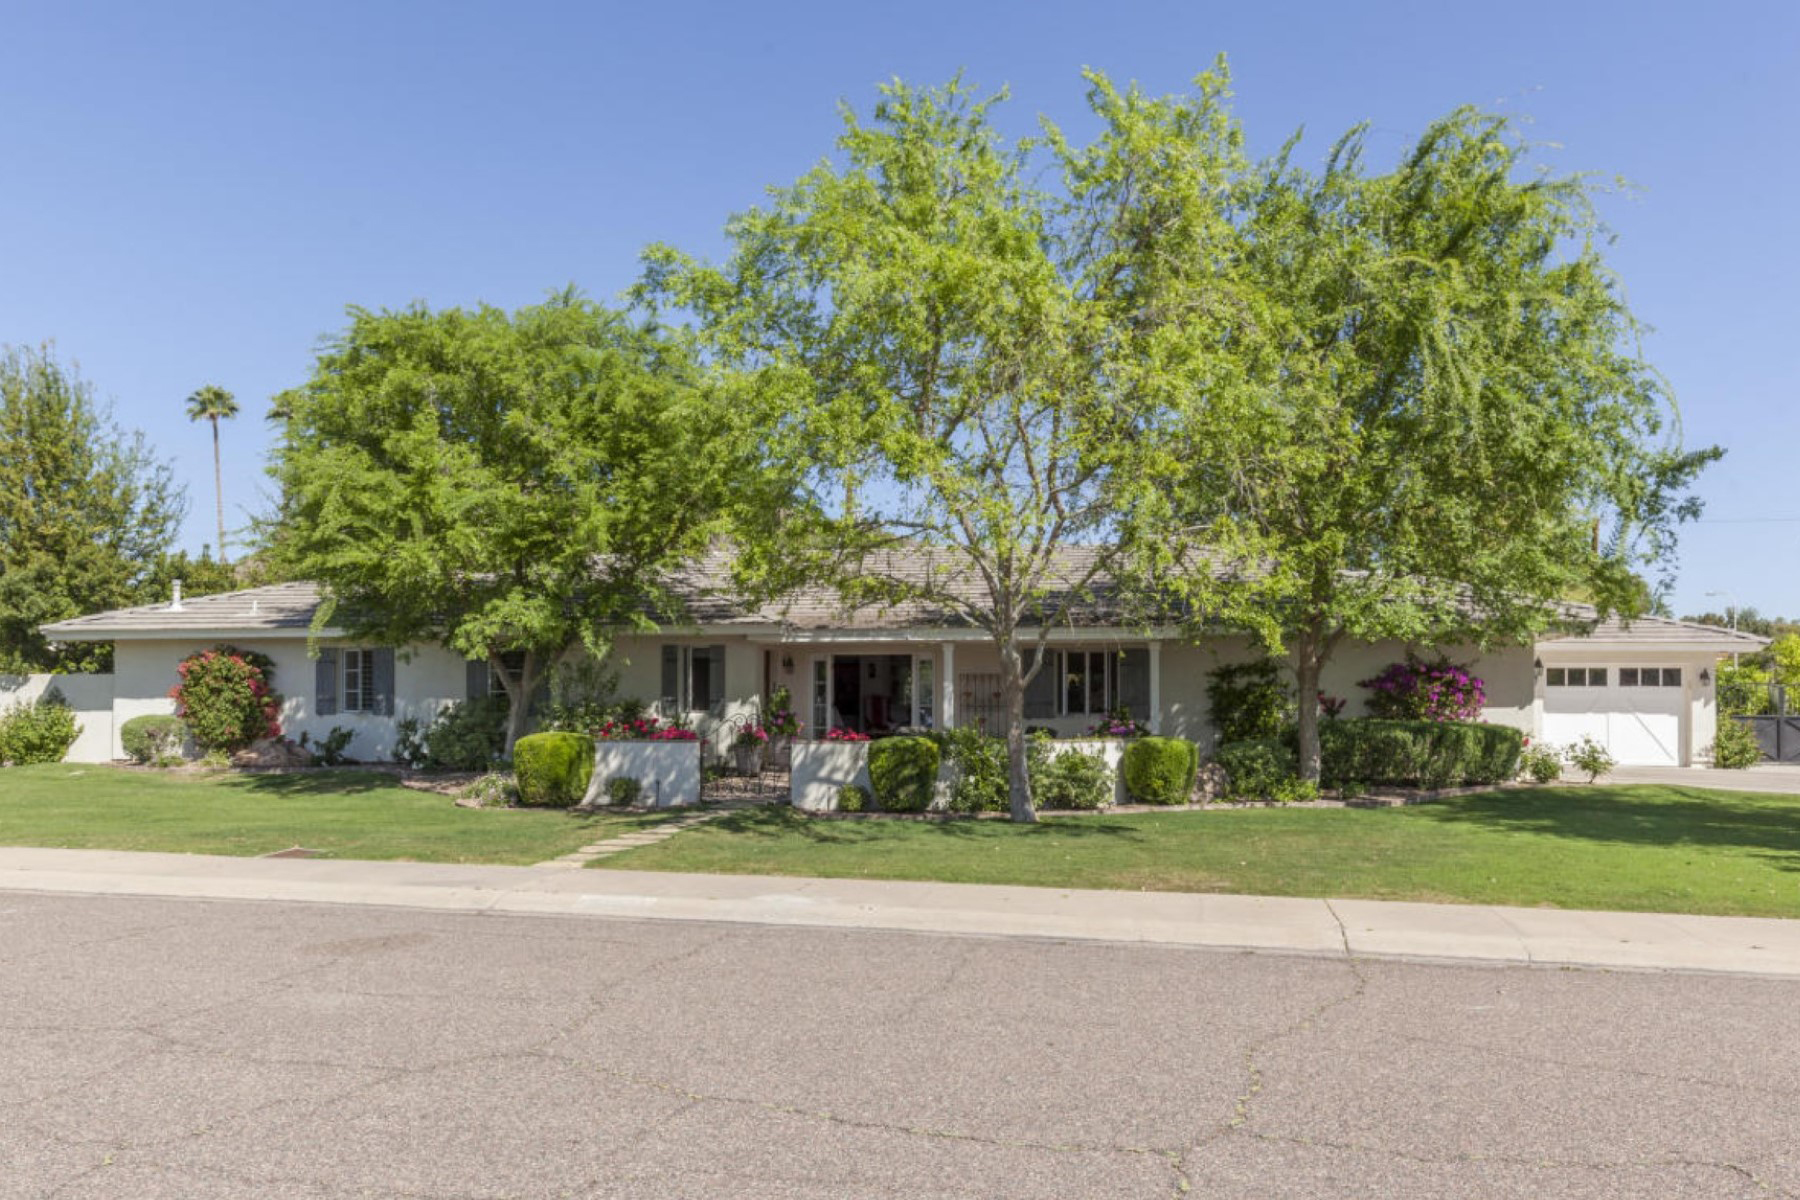 Single Family Home for Sale at Wonderful 5 Bedroom Home with Quintessential Arcadia Charm 6140 E Calle Del Sud Scottsdale, Arizona 85251 United States